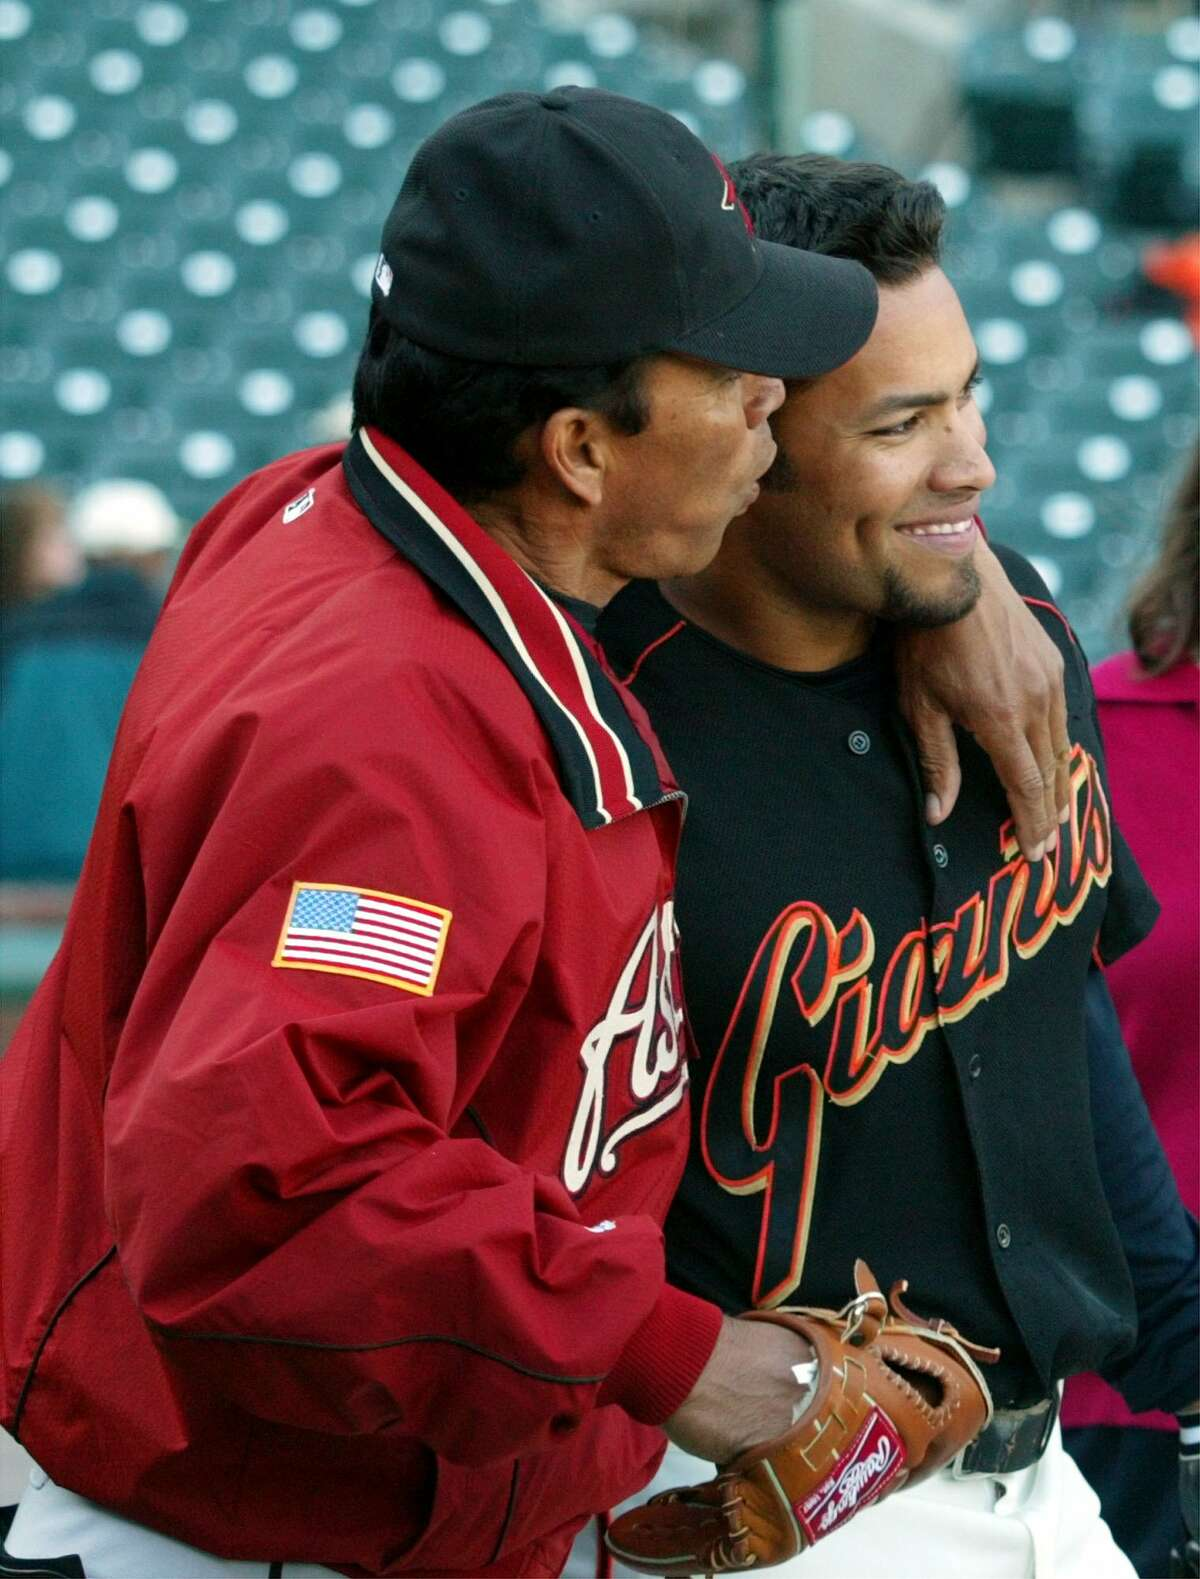 Astros coach Jose Cruz, left, shows a little fatherly affection to his son, San Francisco Giants right fielder Jose Cruz Jr., right, prior to their game in San Francisco in April 2003. The younger Cruz competed at Rice but left after his junior year for the majors. He and his brother Jose Enrique received their degrees from Rice on Saturday.